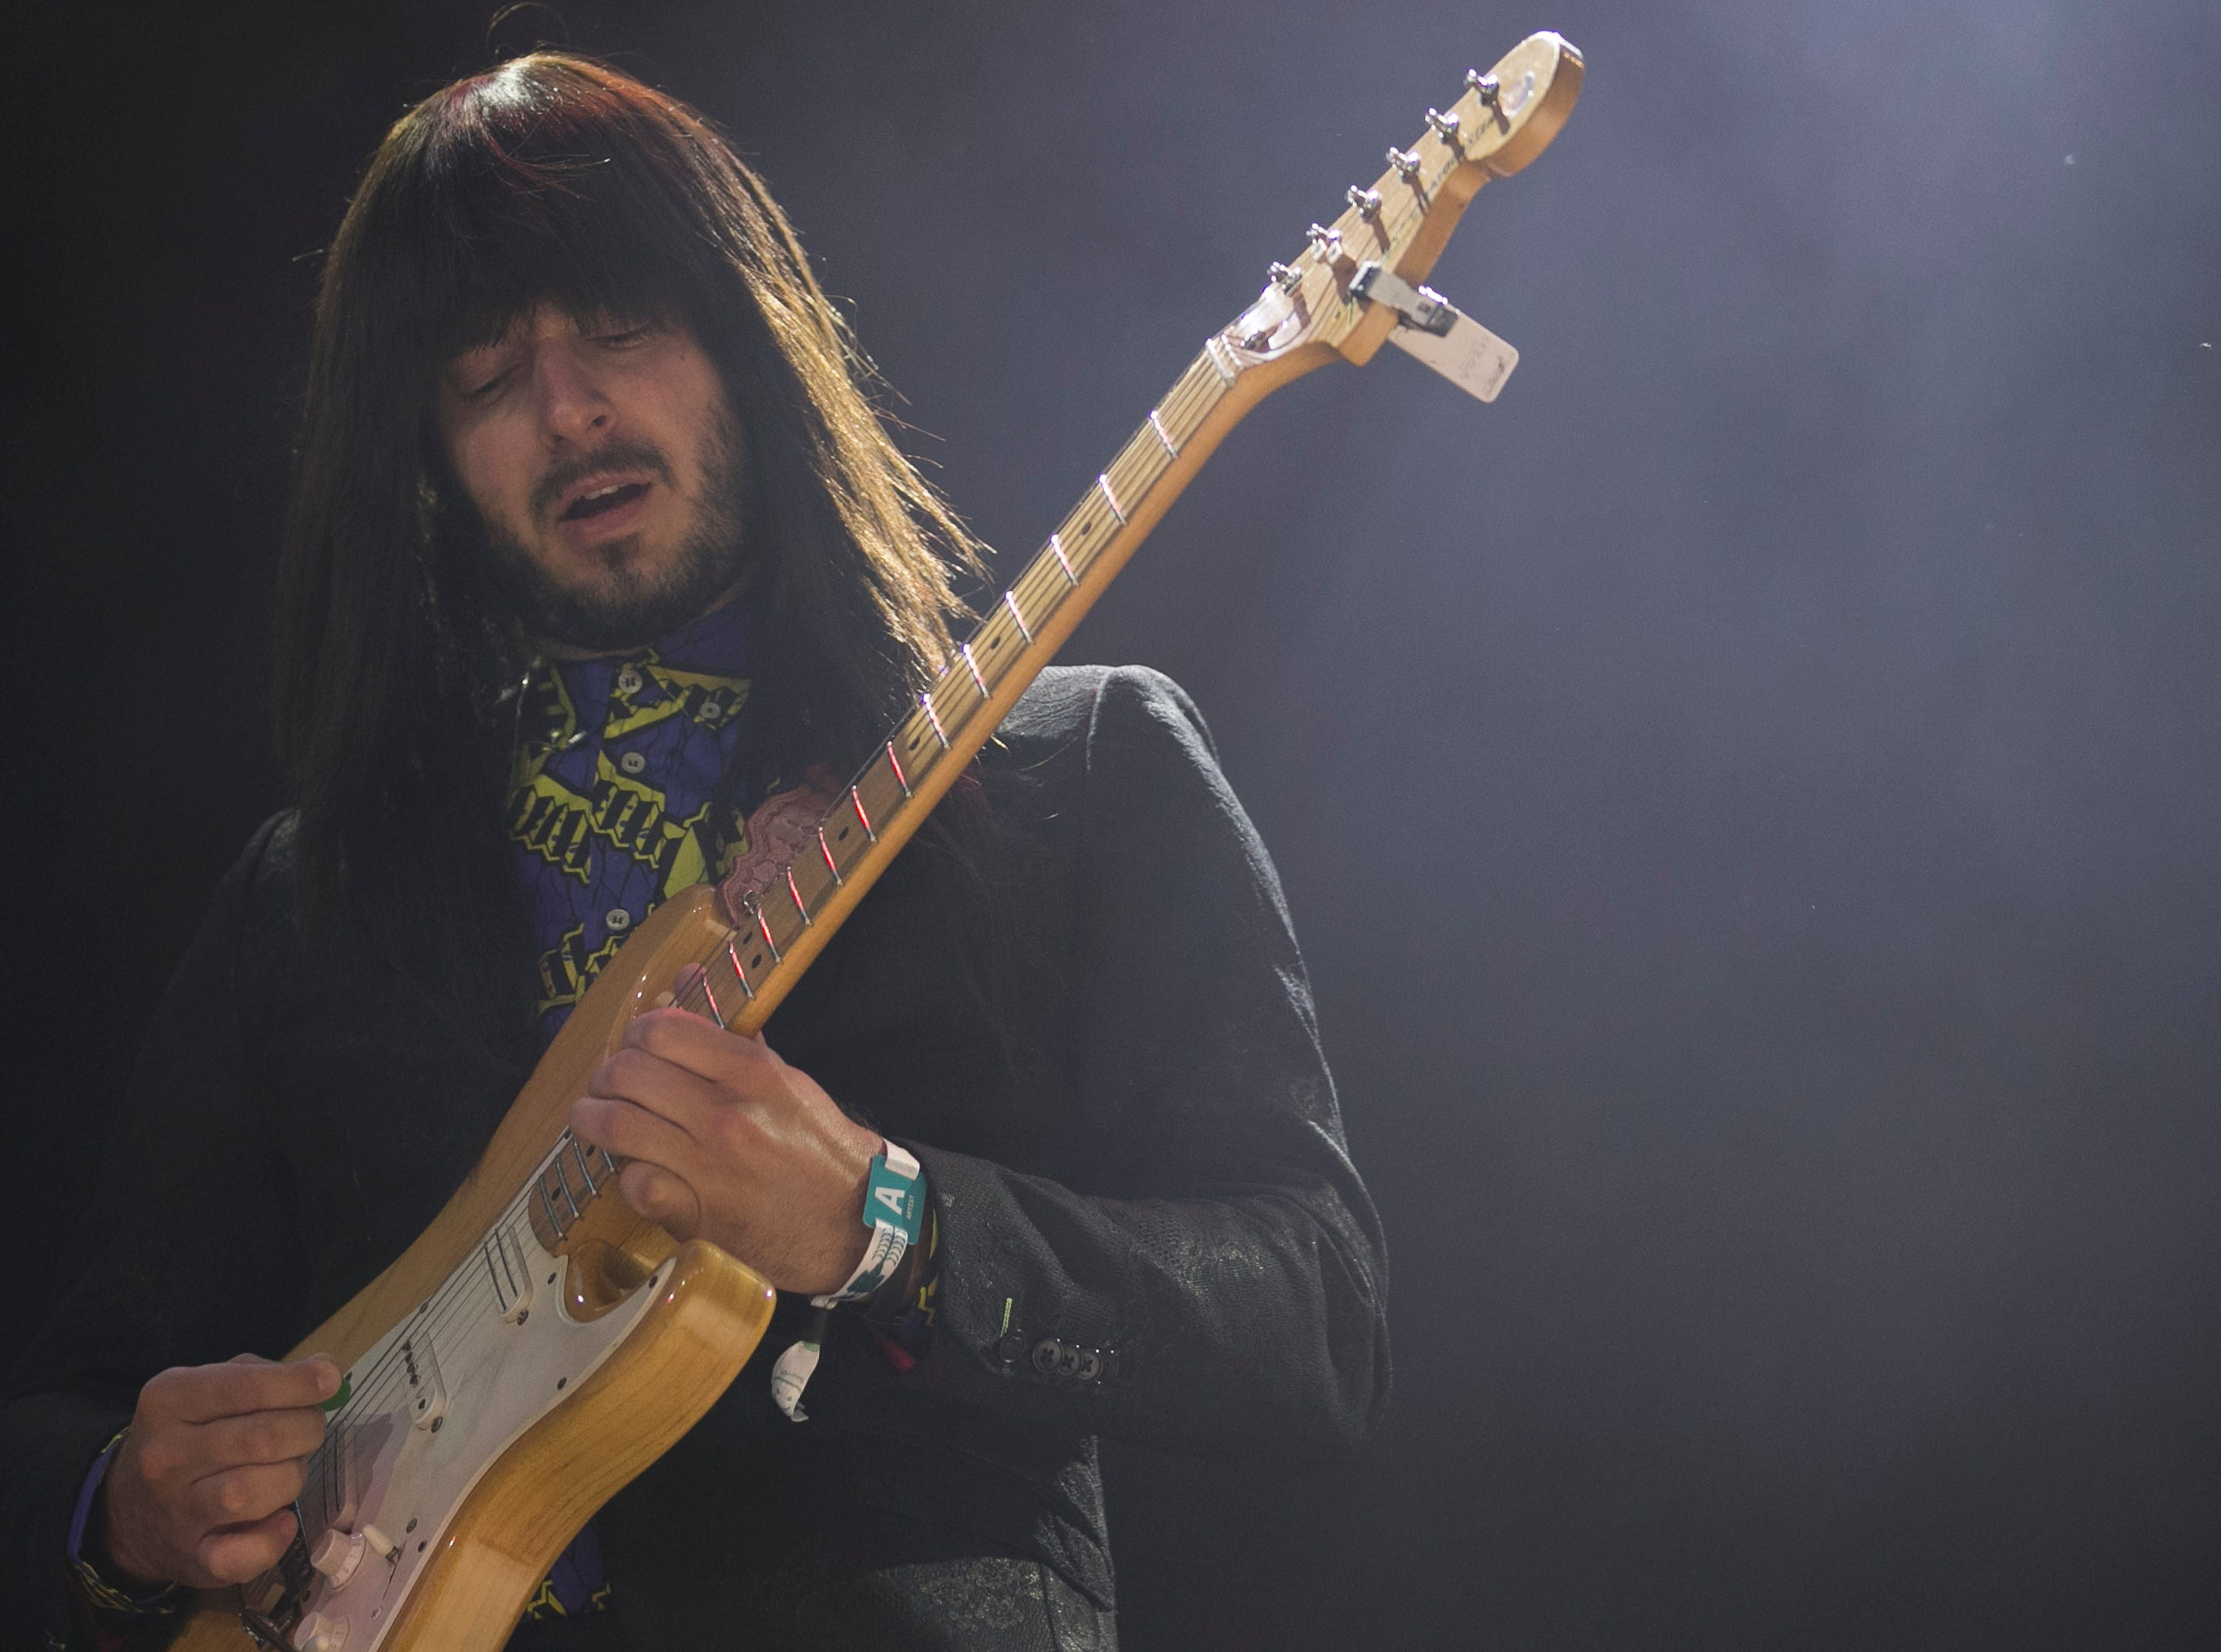 Khruangbin performs at the 2019 FORM Arcosanti music festival near Camp Verde, Arizona, on May 11, 2019.